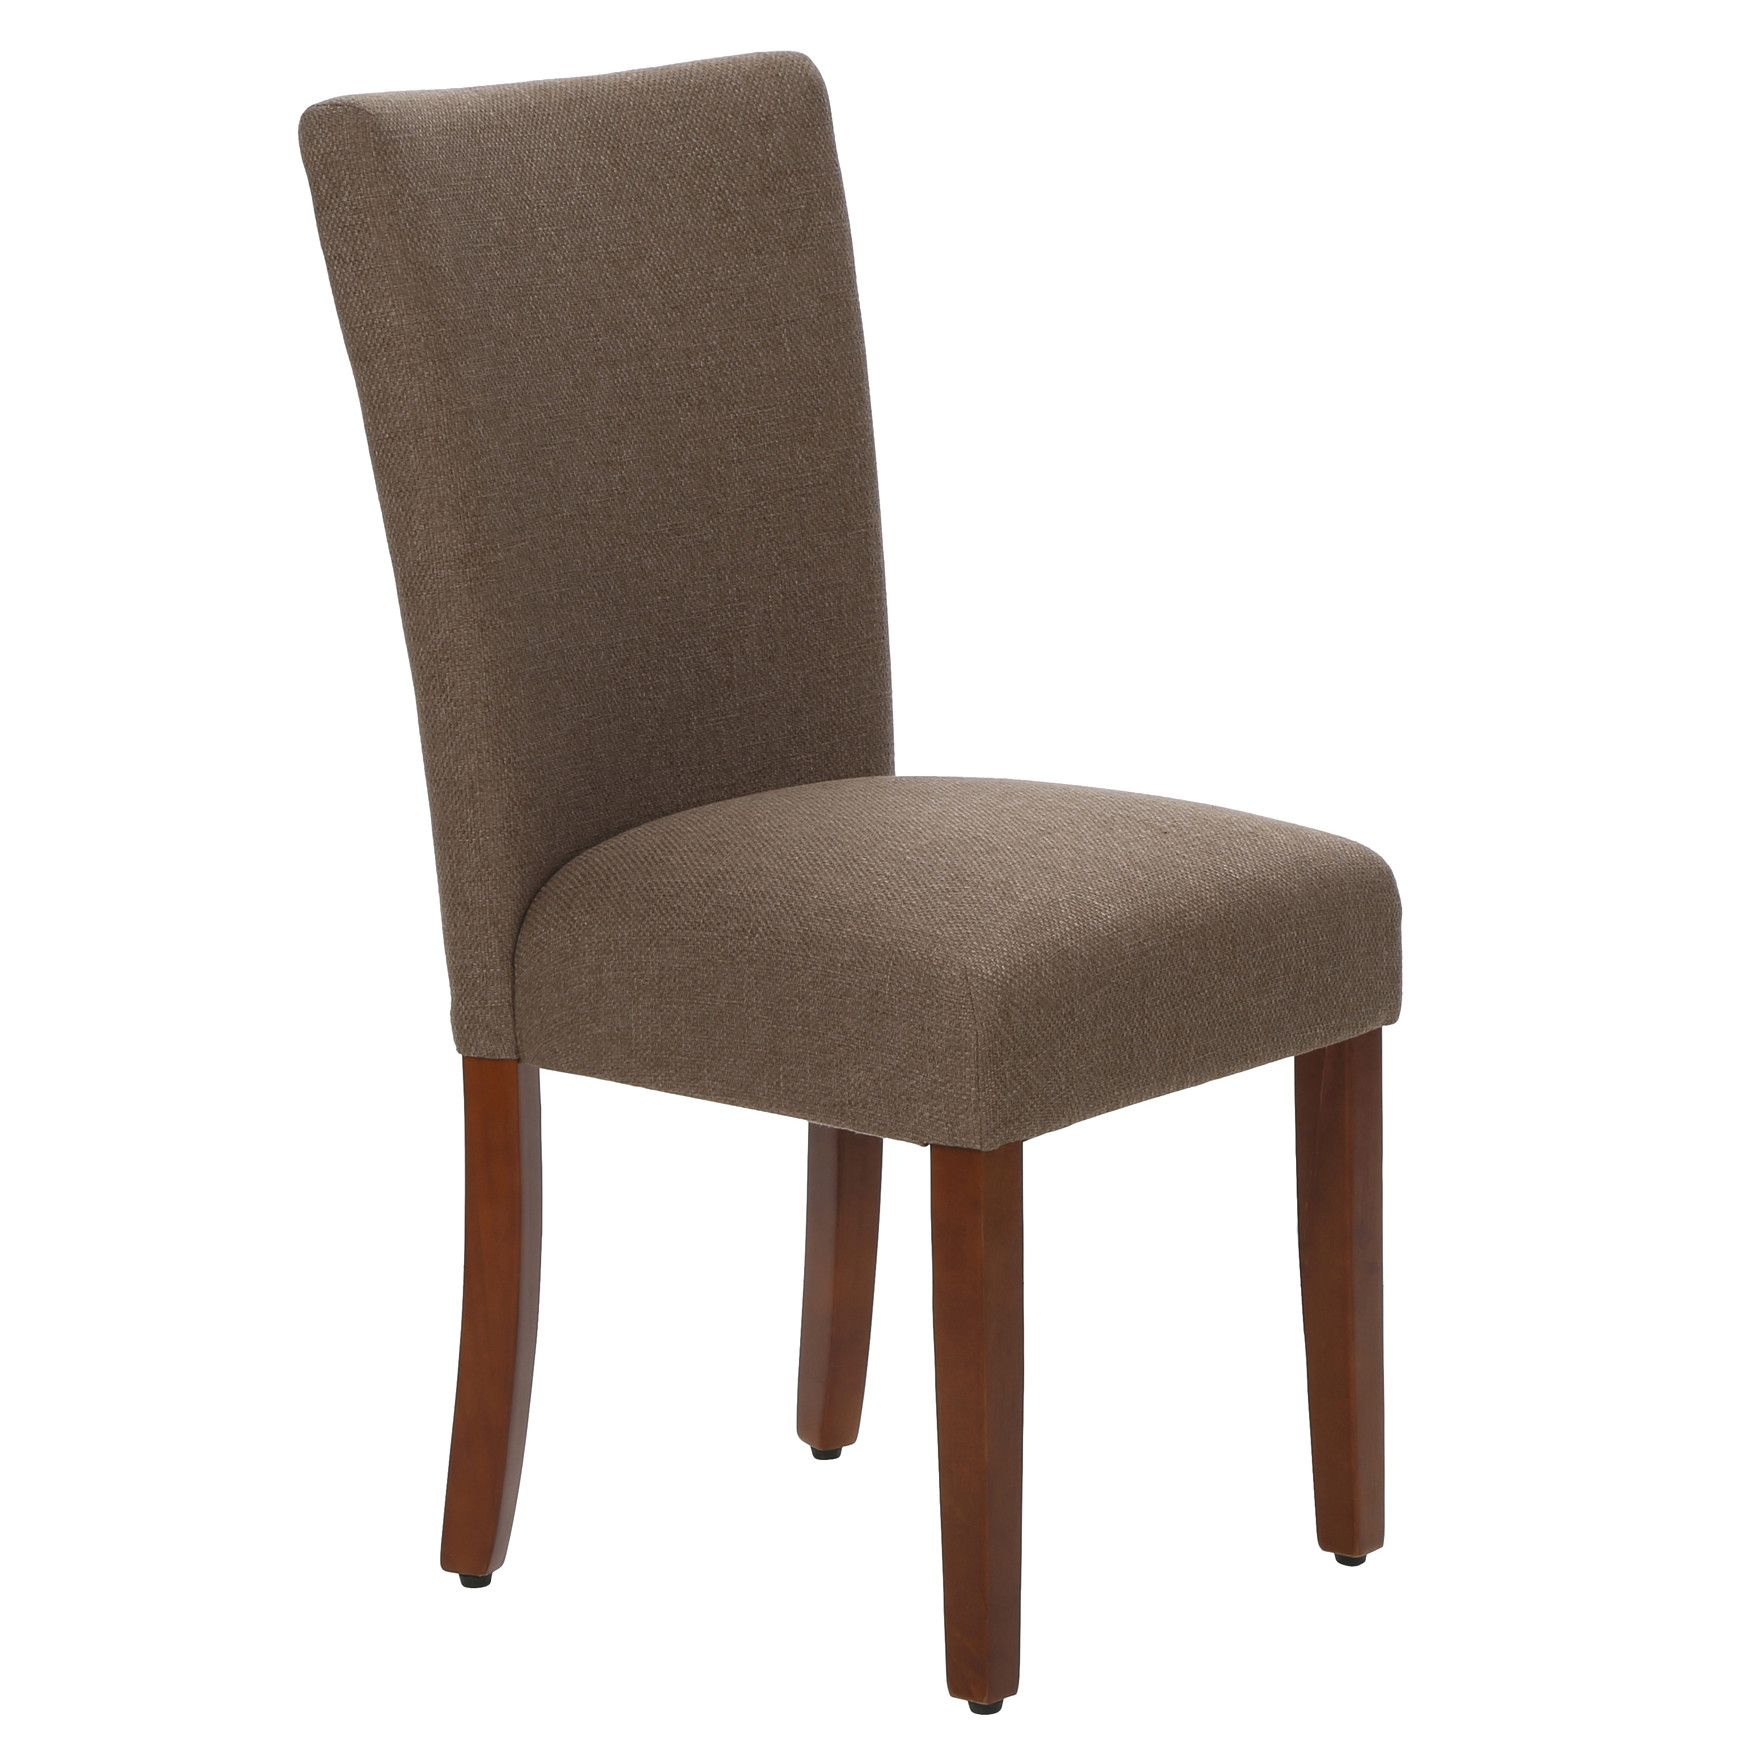 Waverly Upholstered Dining Chair Dining Chairs Chair Dining